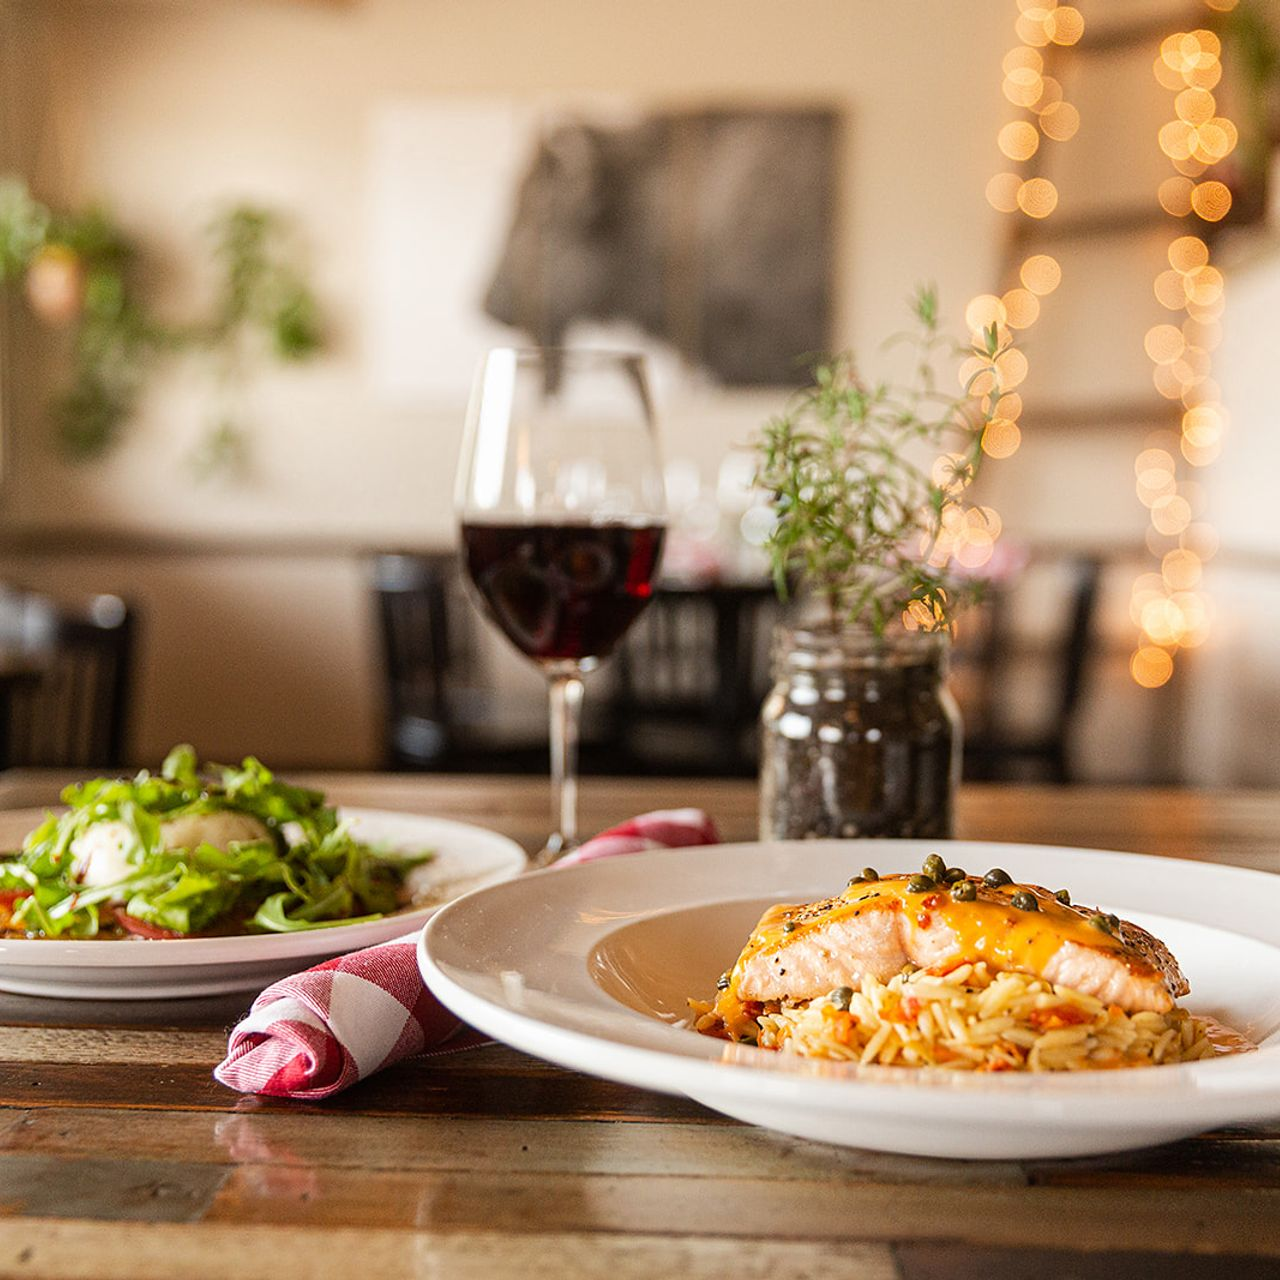 Read full profile my knowledge of food and wine pairing extends and is limited to red wine goes wi. Ragazza Di Bufalo Donnelly Restaurant Donnelly Id Opentable